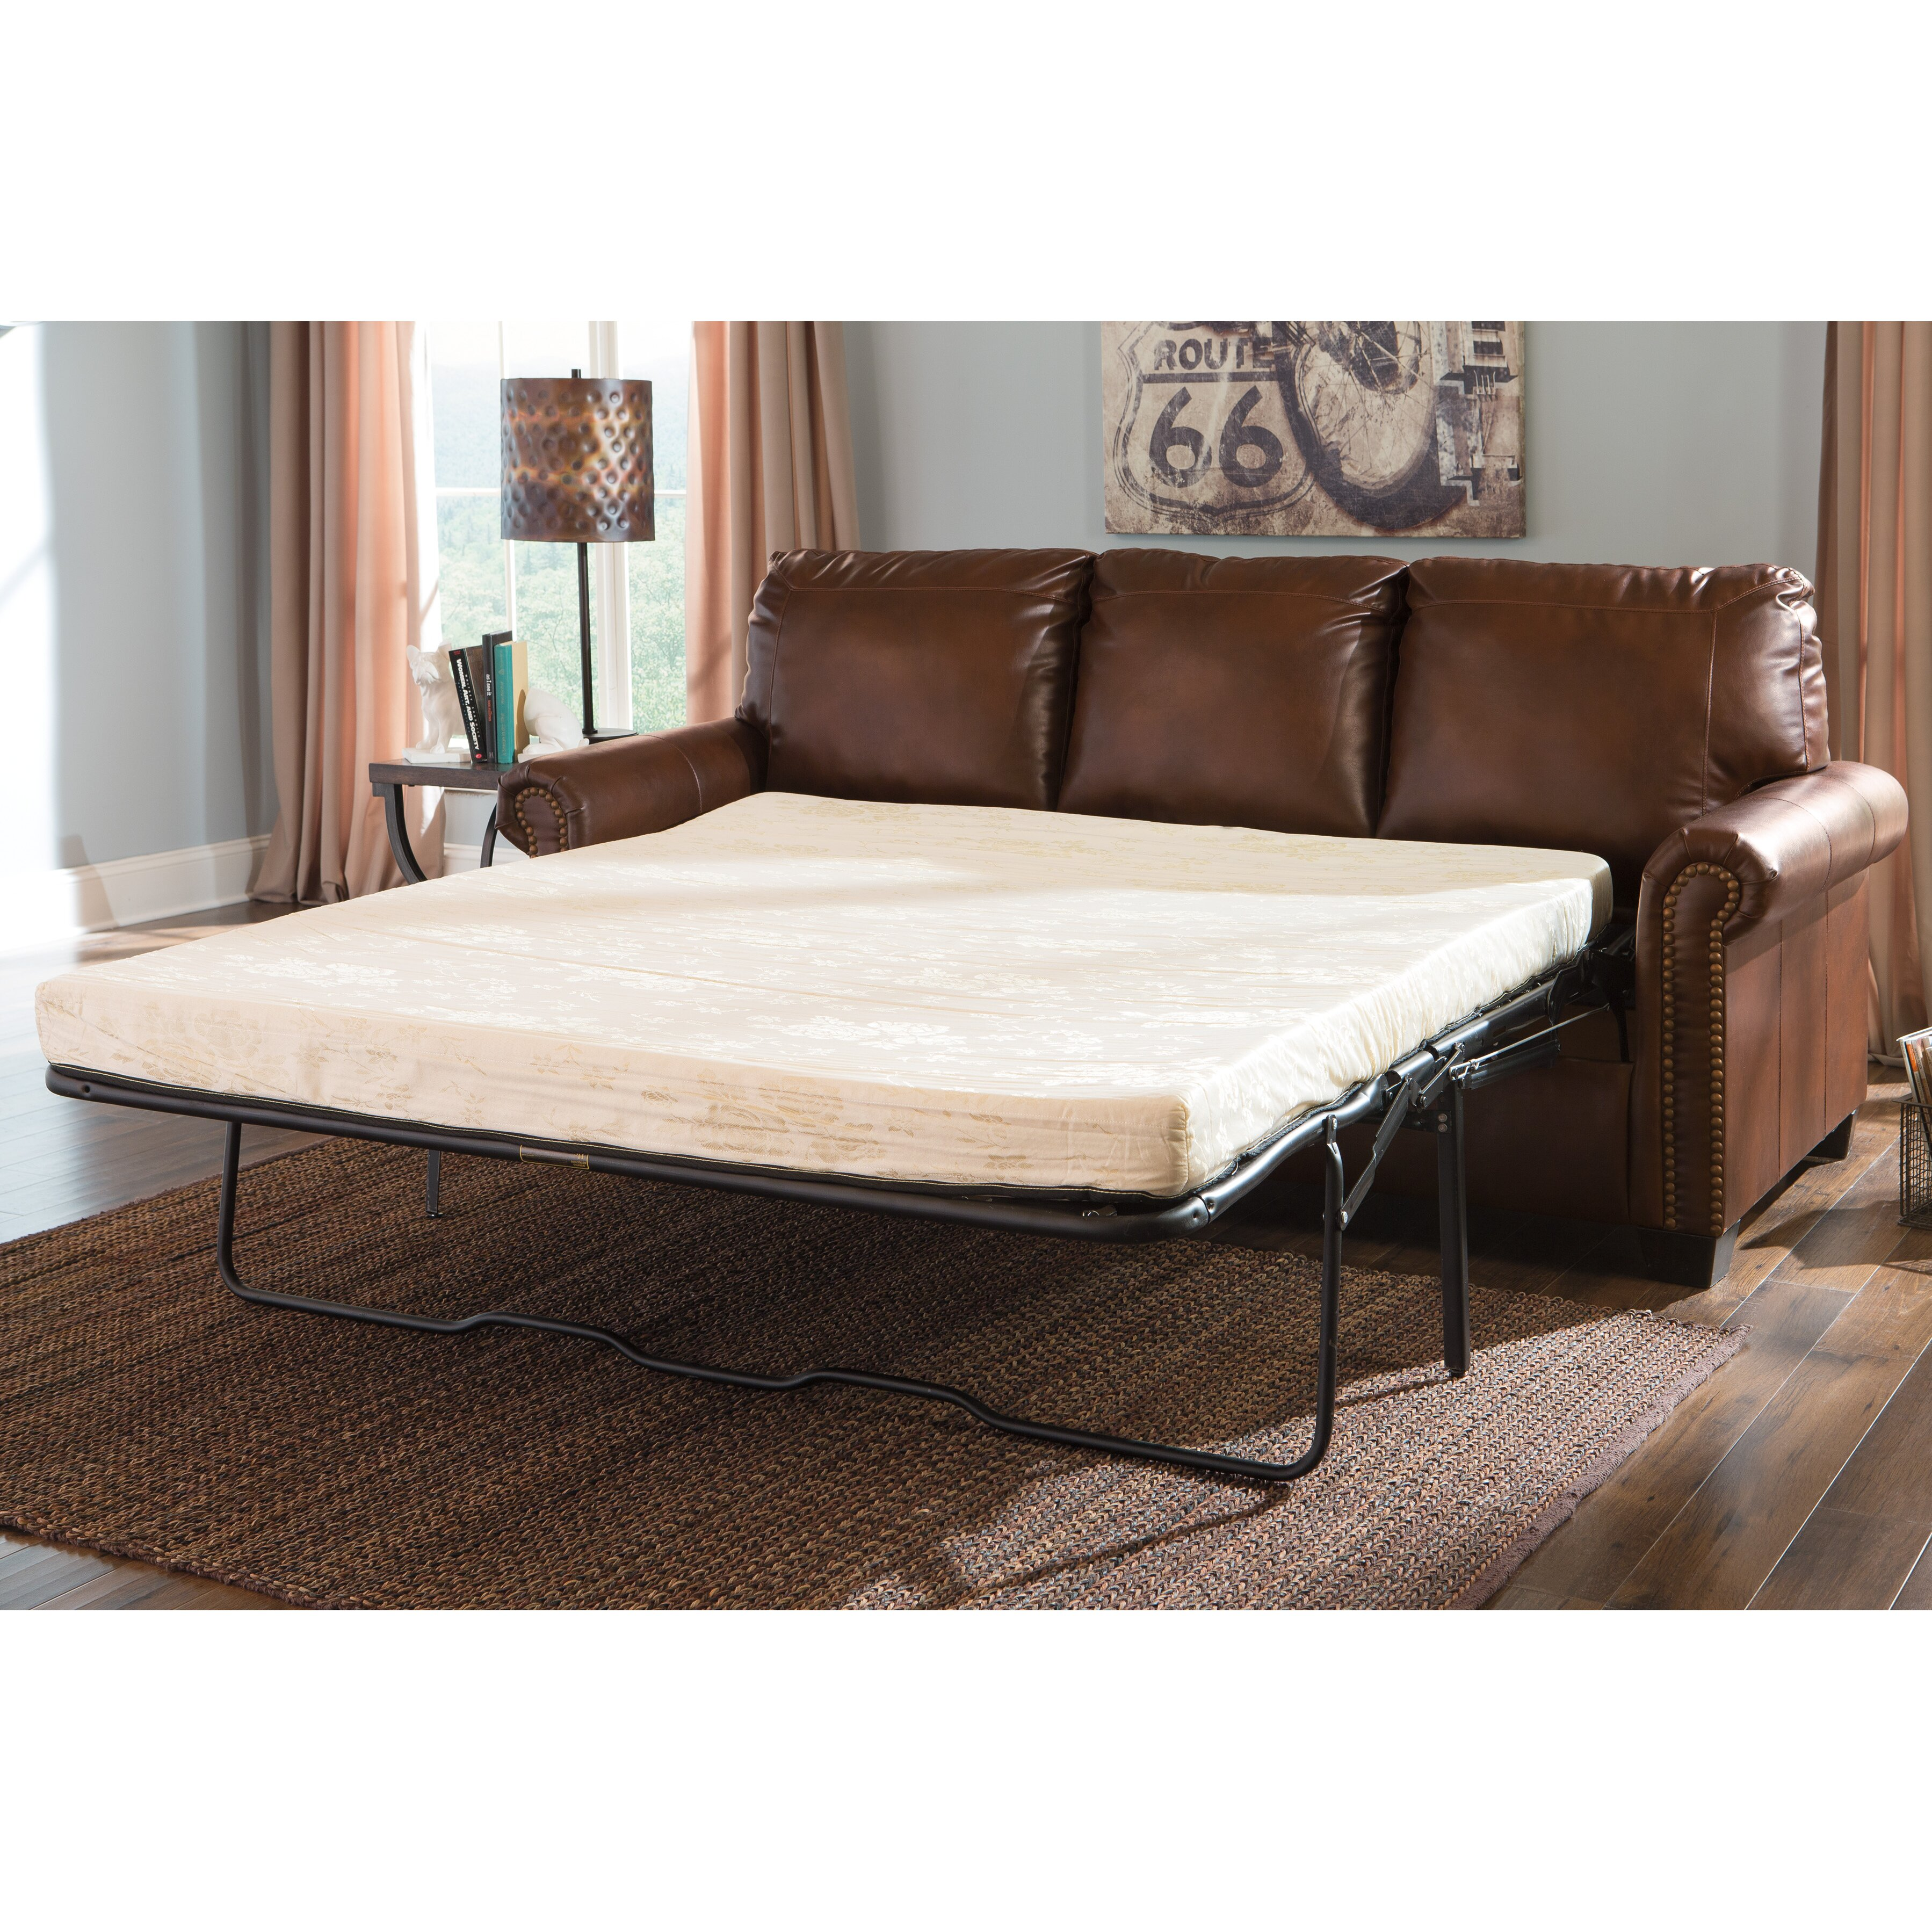 Ashley Furniture Leather Sofa Reviews Full Size Of Sleeper Queen